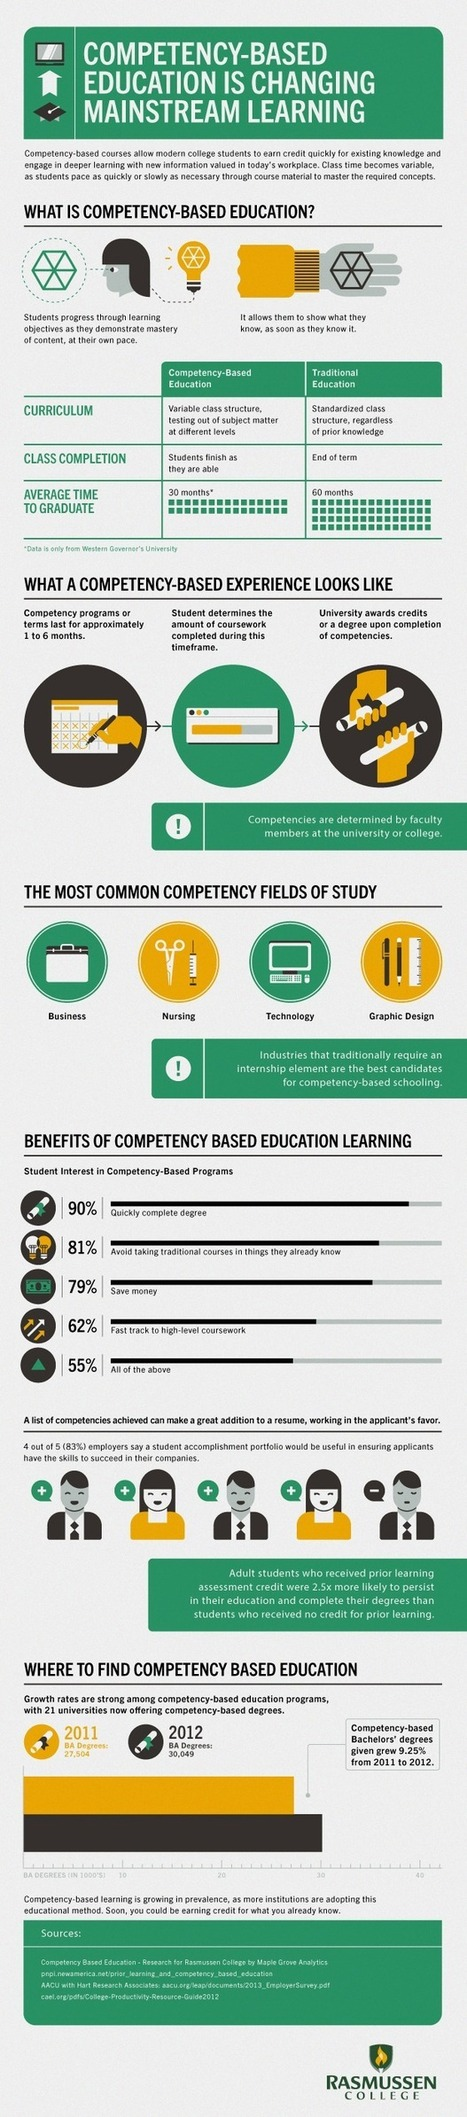 How Competency-Based Education is Changing Mainstream Learning Infographic - e-Learning Infographics | Multiple Intelligence | Scoop.it